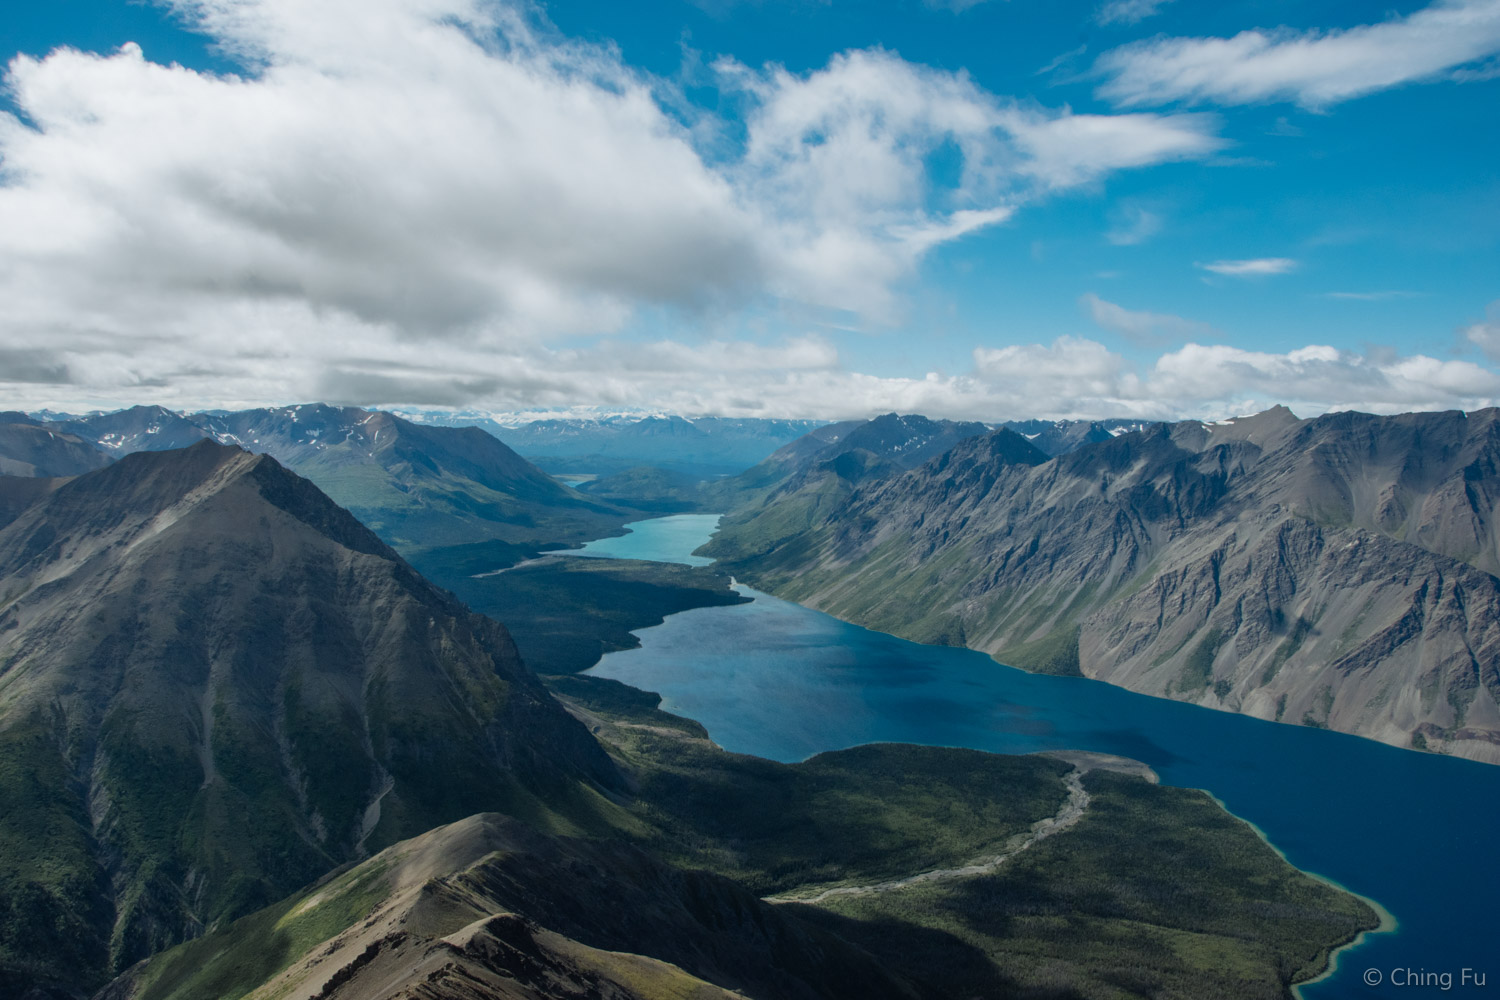 View of the interior mountains of Kluane National Park.